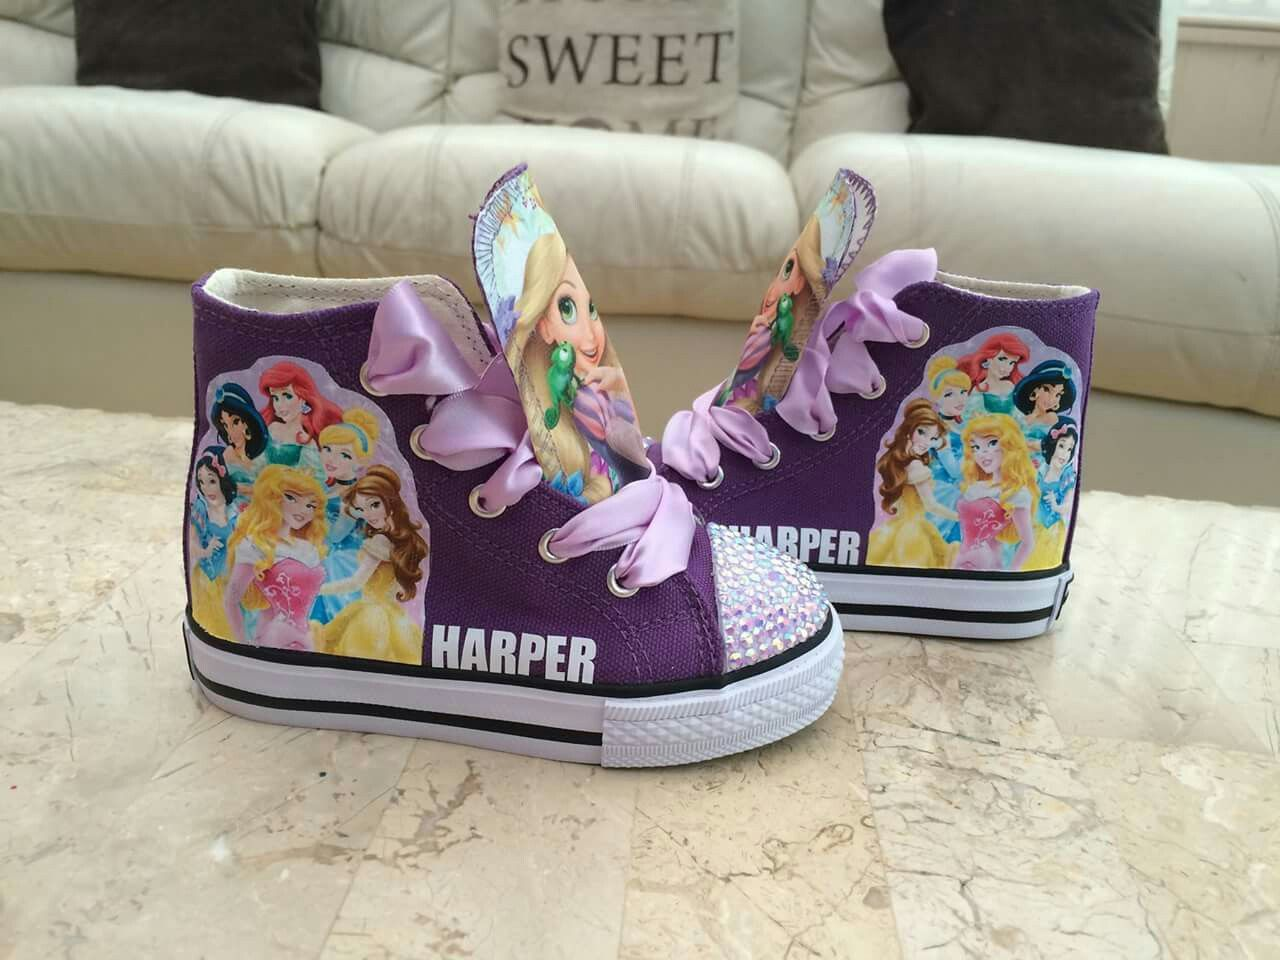 808c3c38b35b Princess and rapunzel personalised high top trainer shoes £25 ...